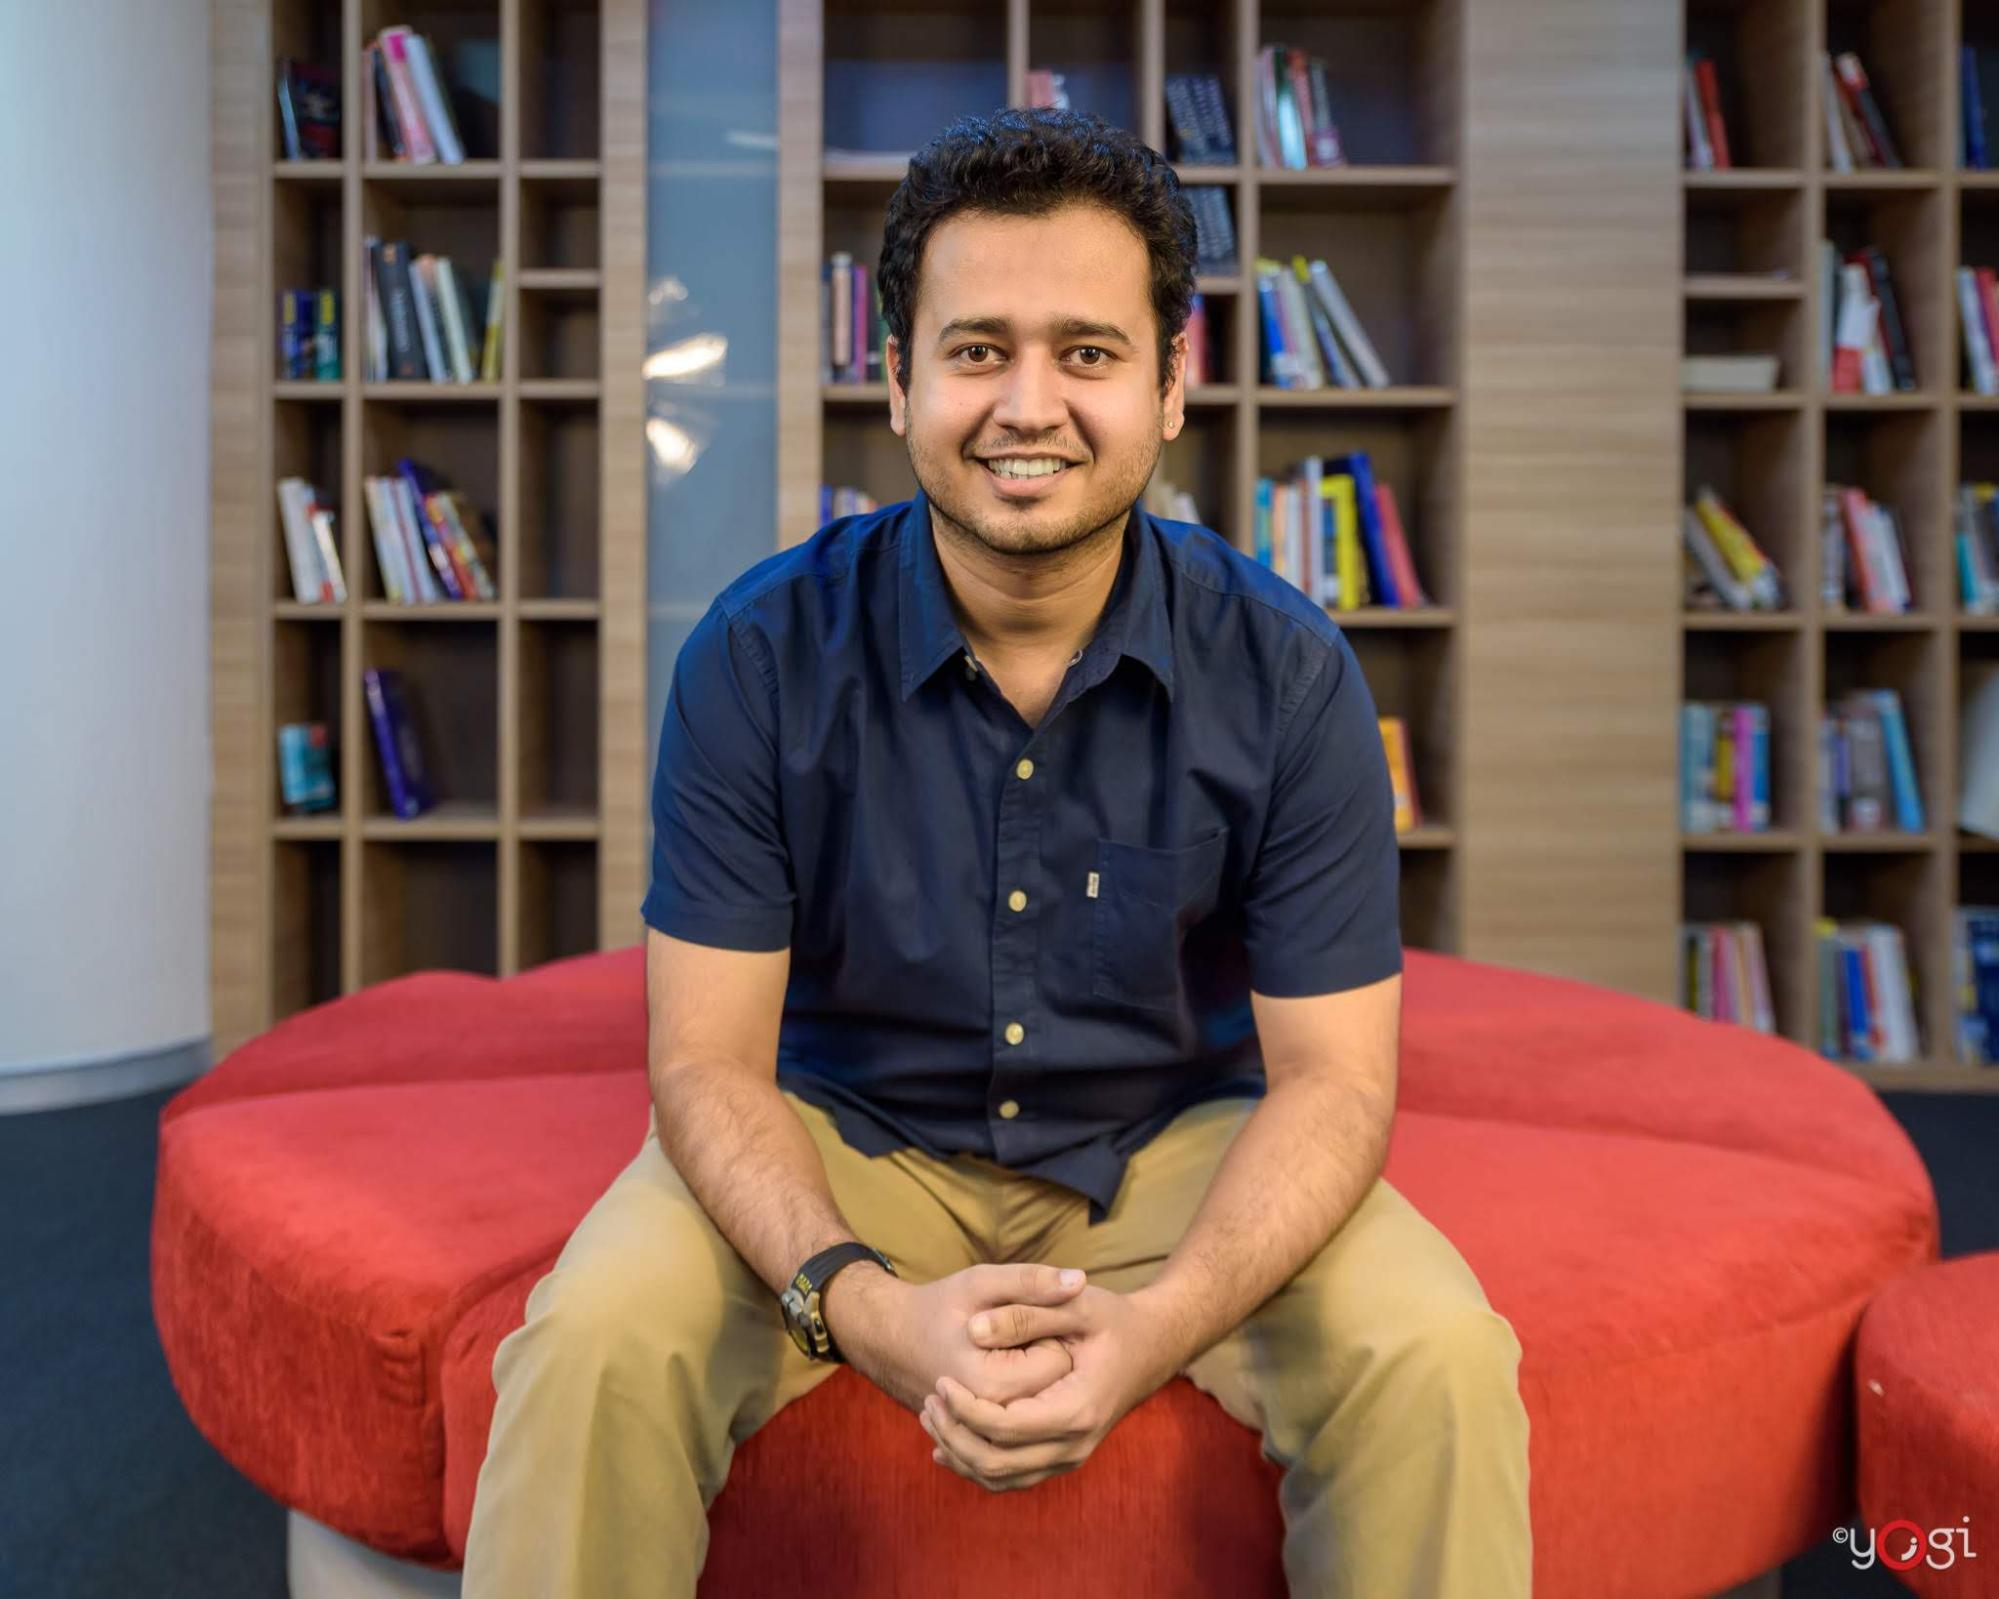 Image shows Bhavesh Bhatt seated and smiling at the camera